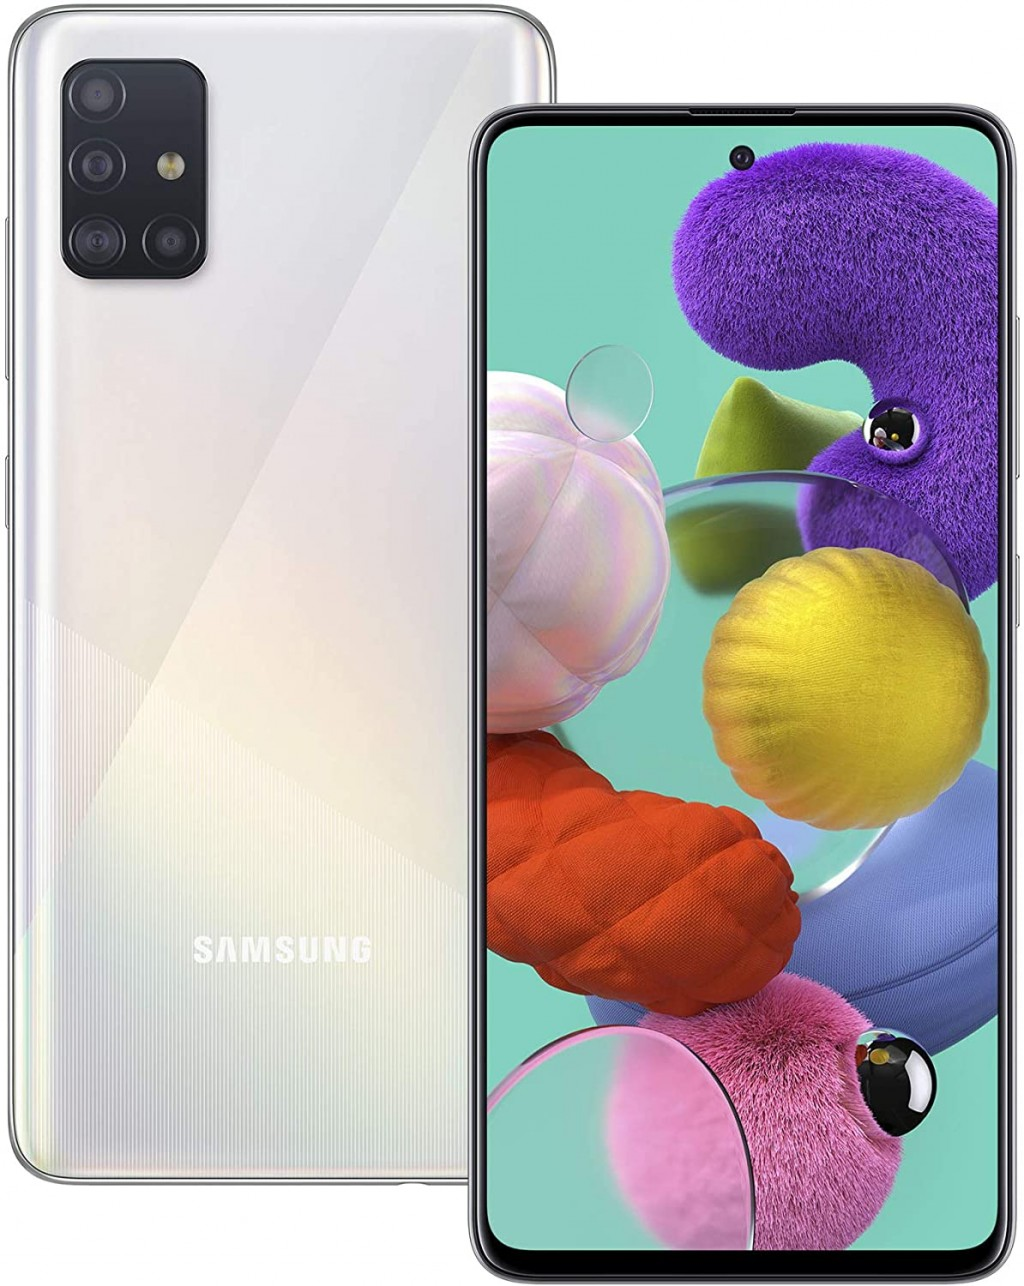 "Samsung Galaxy A51 Silver, 6.5 "", Super AMOLED, 1080 x 2400, Exynos, 9611, Internal RAM 4 GB, 128 GB, microSD, Dual SIM, Nano-SIM, 3G, 4G, Main camera 48+12+5+5 MP, Secondary camera 32 MP, Android, 10.0, 4000 mAh"